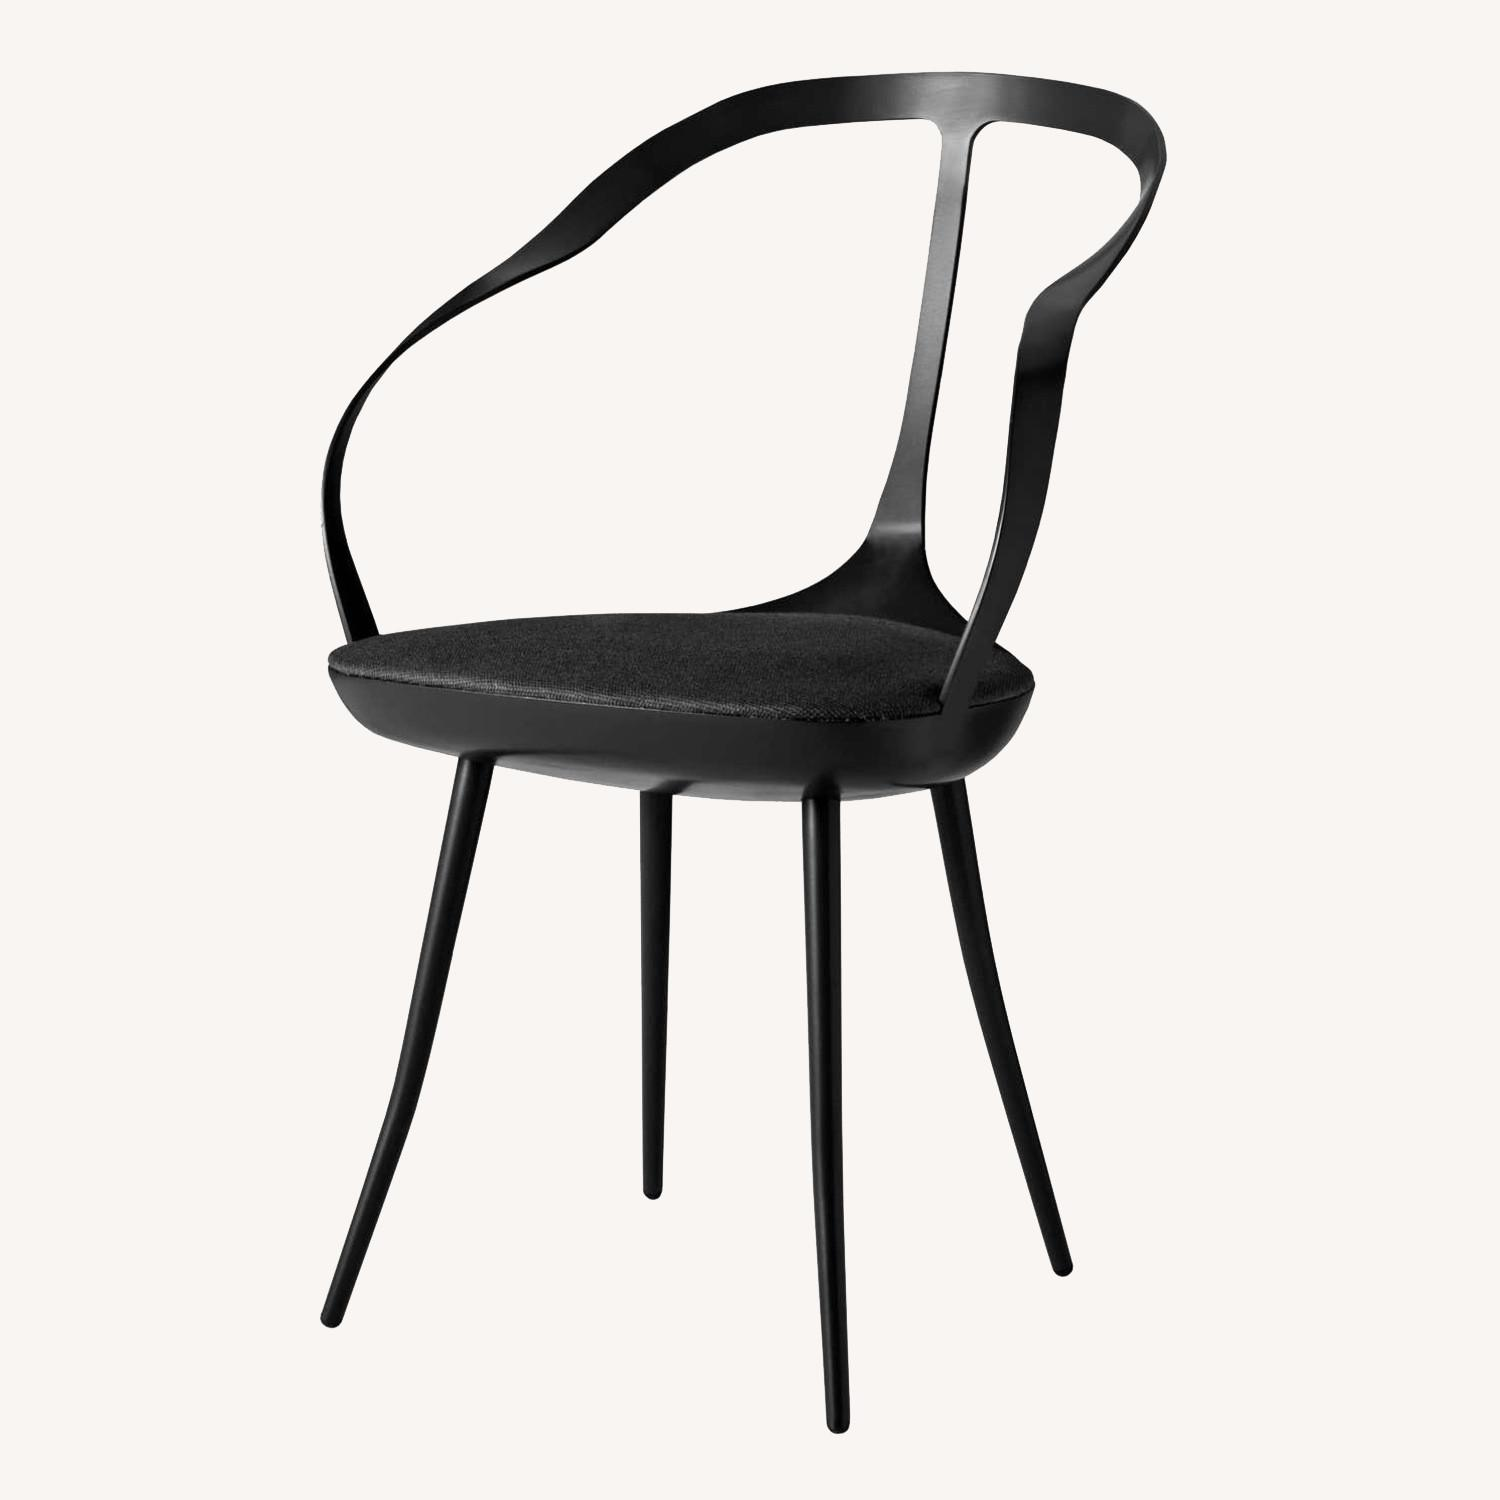 Italian design chairs by Driade - image-0